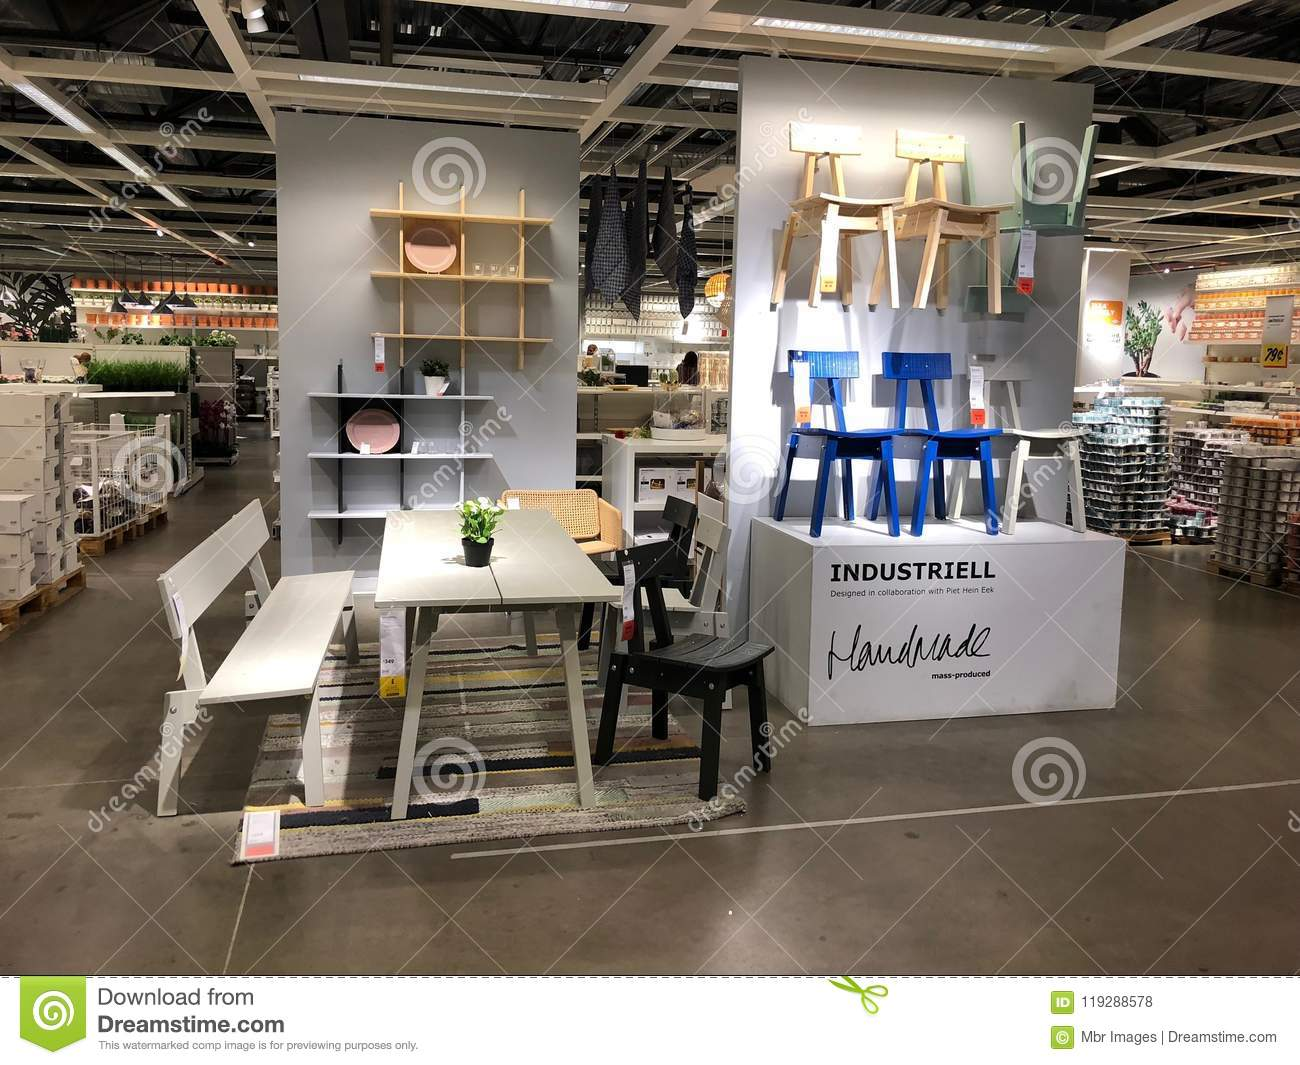 Ikea store editorial stock photo. Image of furniture - 119288578